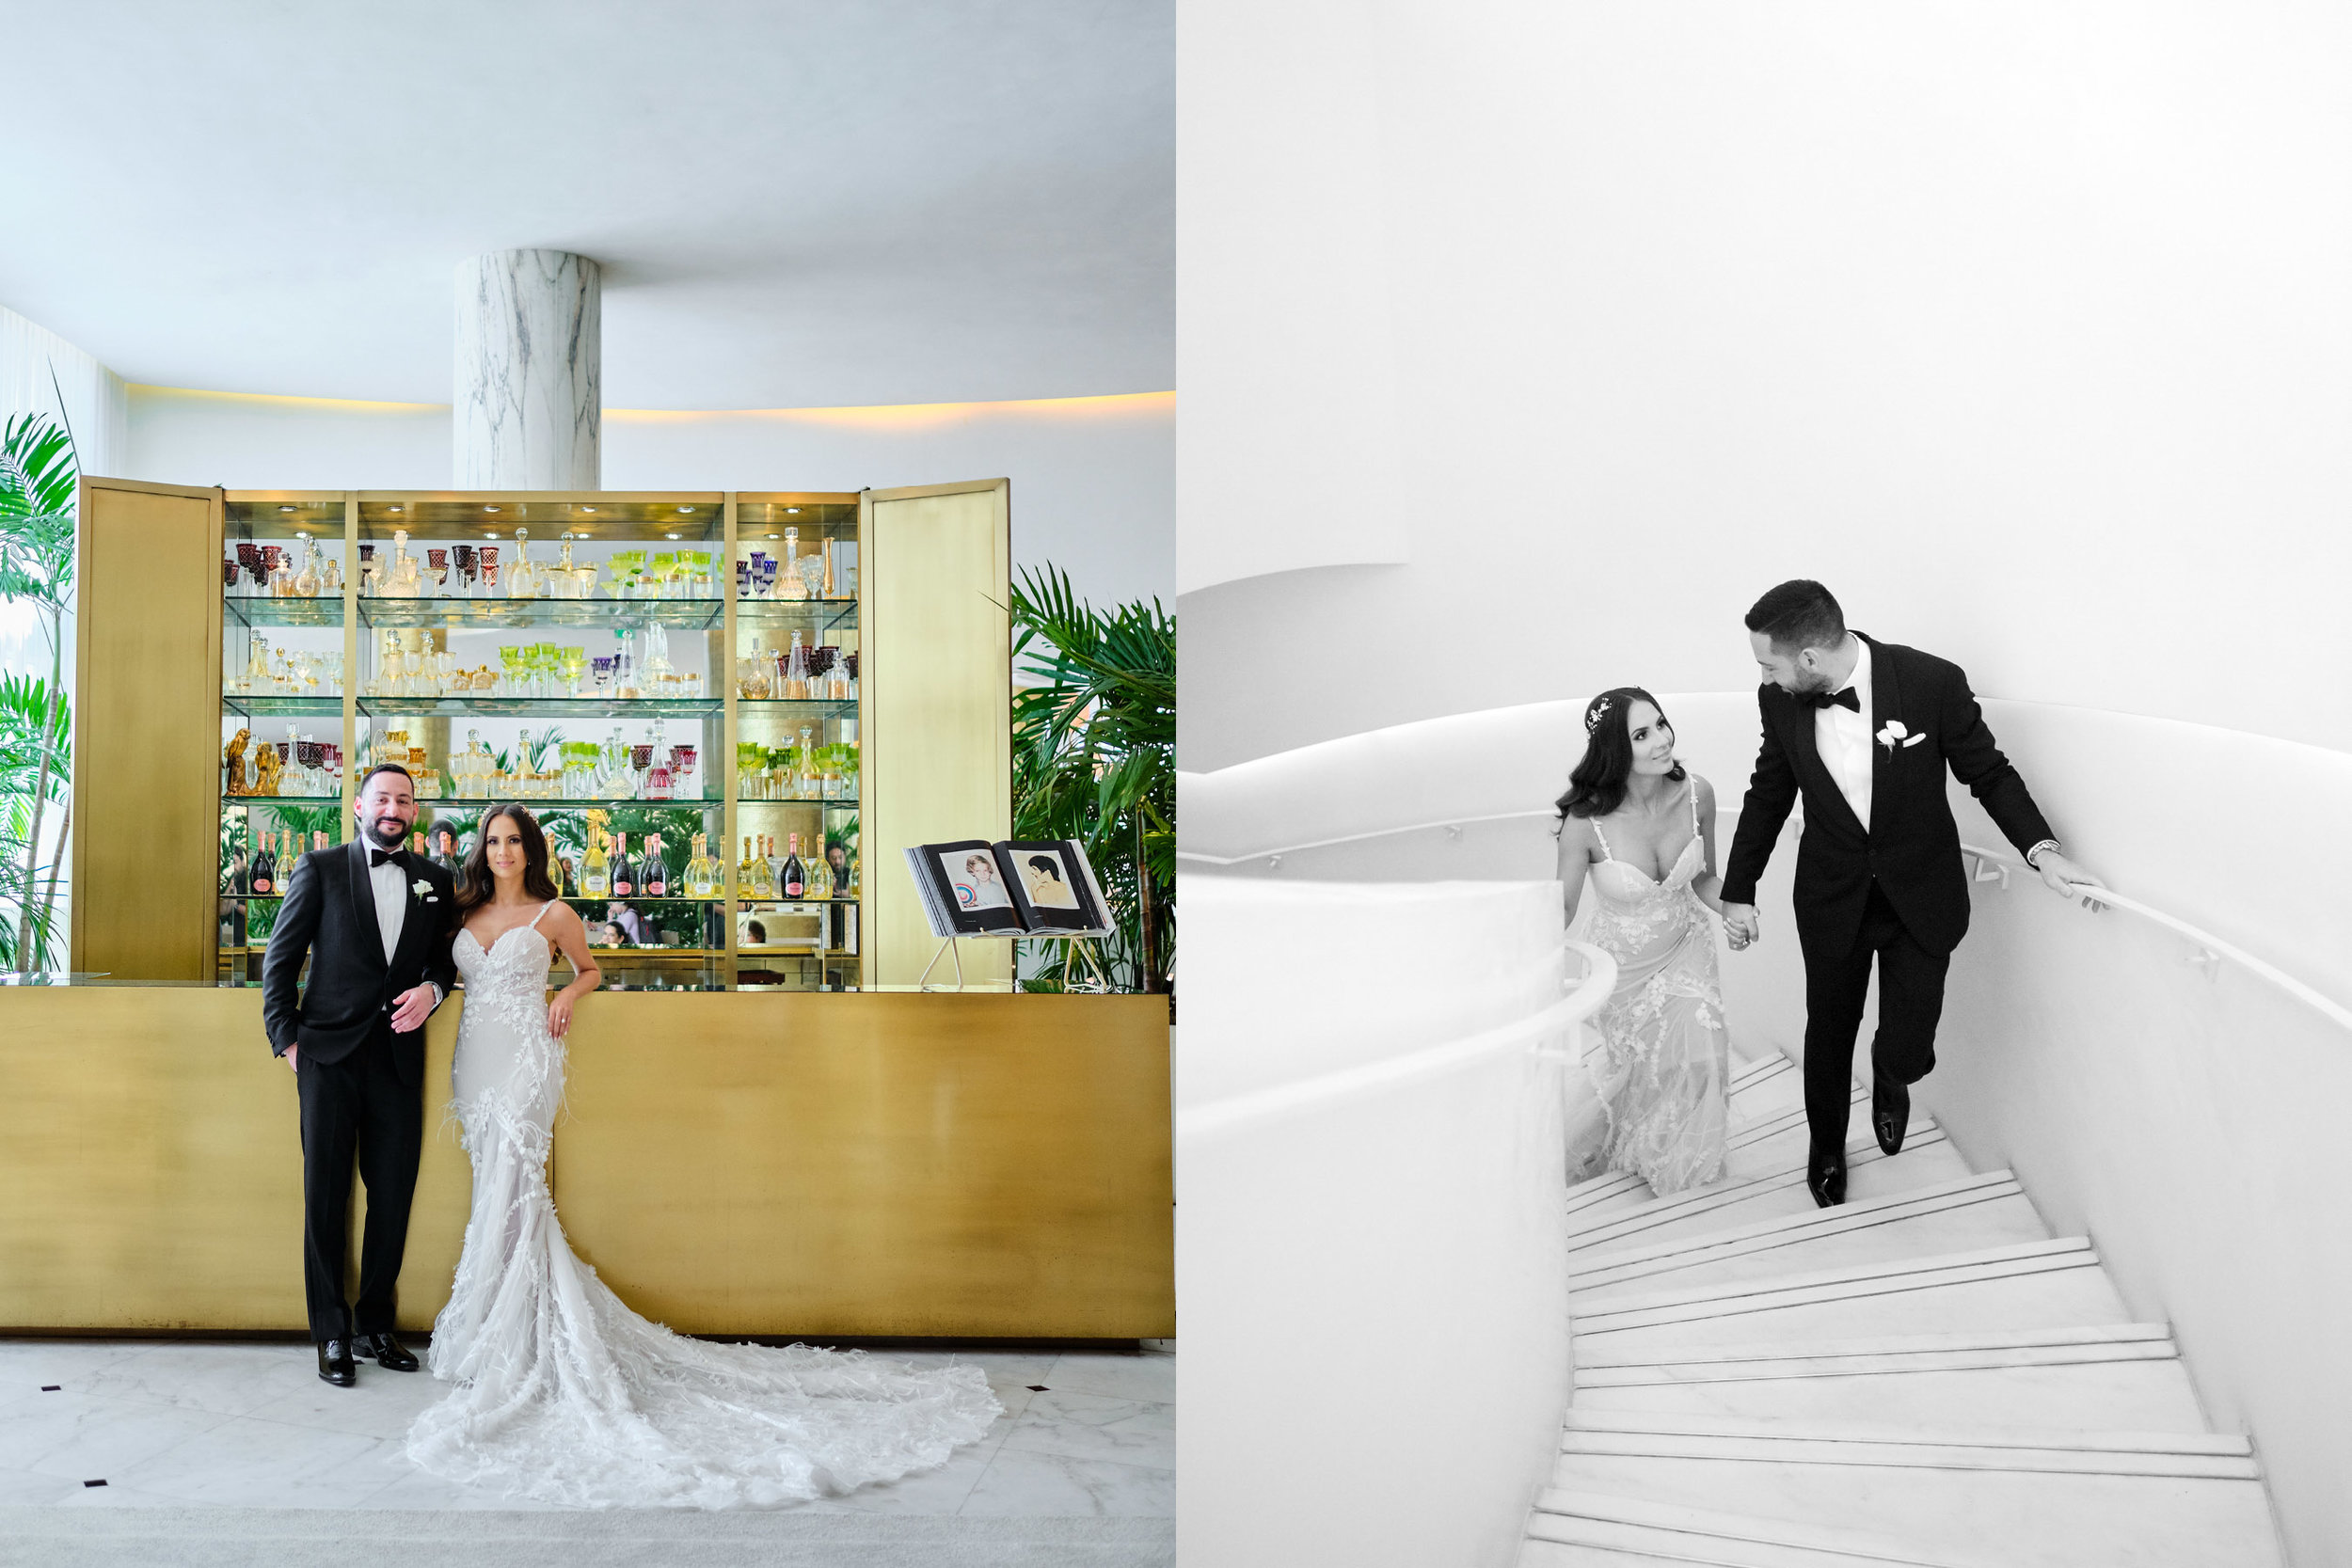 nonesuch_nyc_wedding_photographers_the_edition_miami_wedding_1024_1_1.JPG